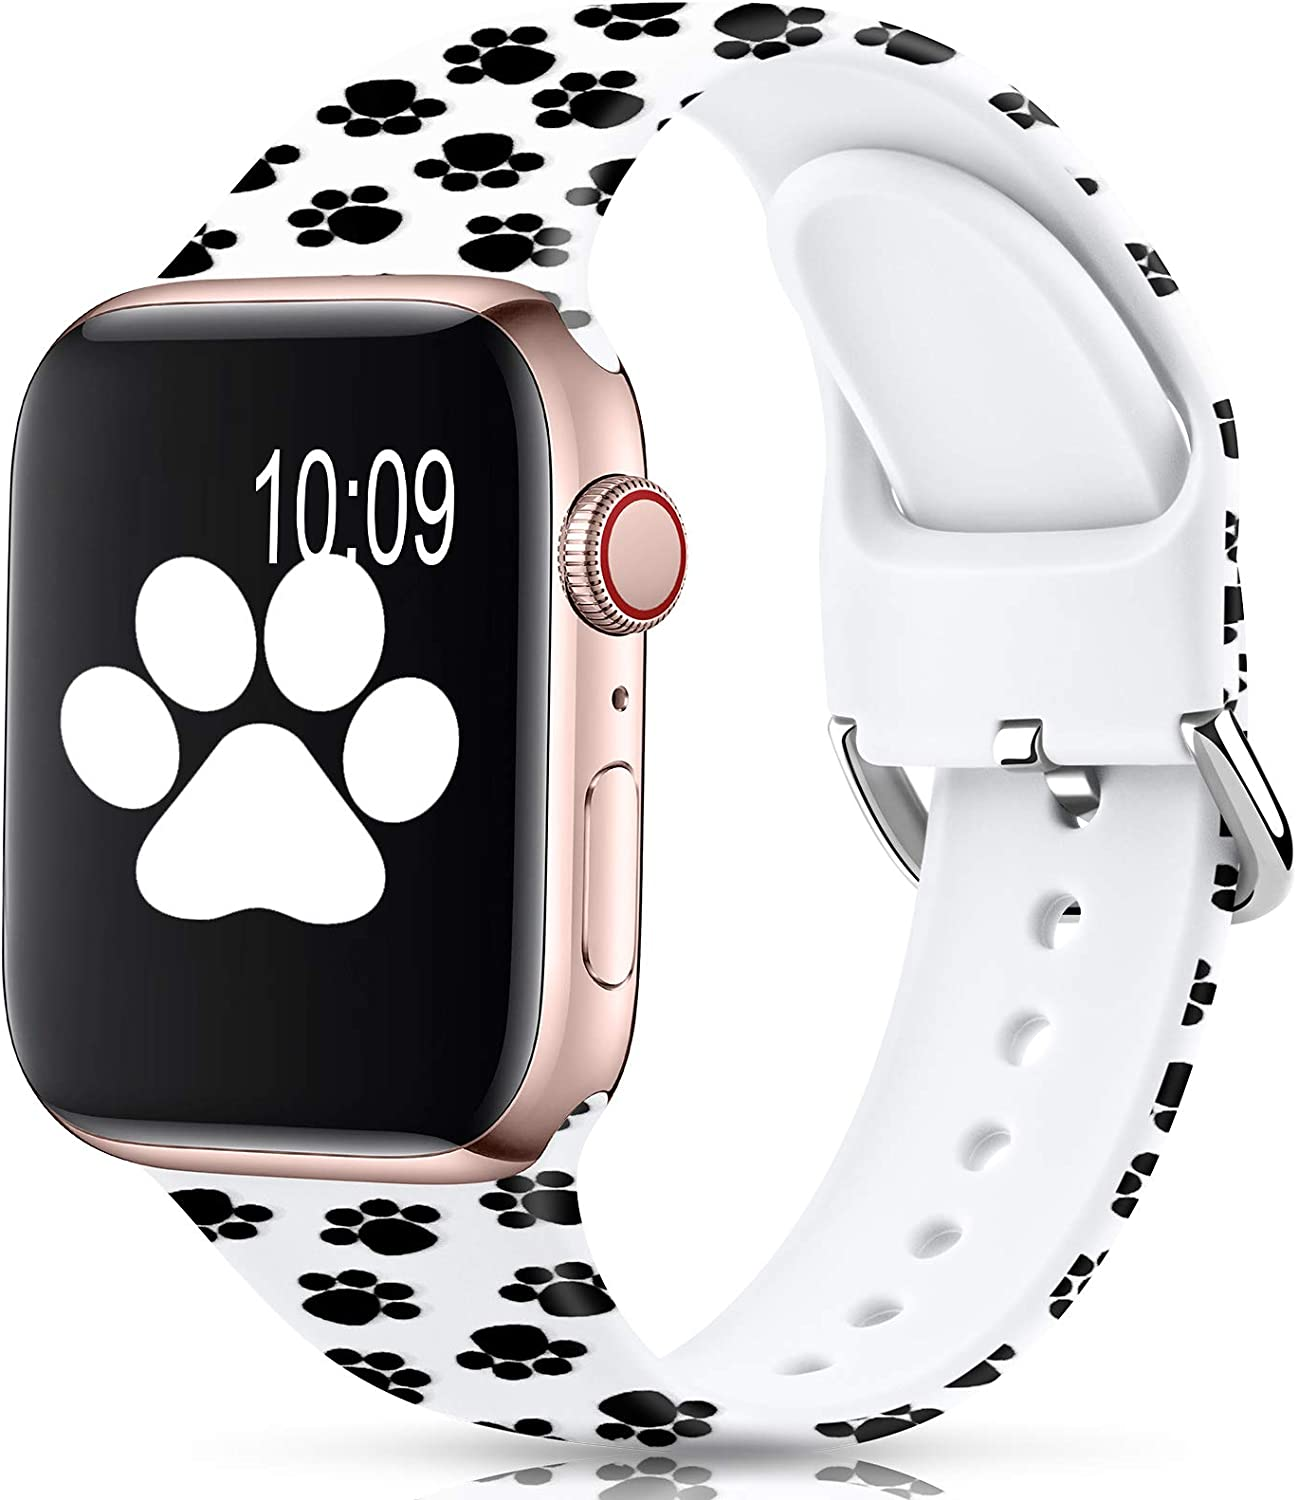 Sport Band Compatible with Apple Watch Bands 38mm 40mm 42mm 44mm for Women Men,Floral Silicone Printed Fadeless Pattern Replacement Strap Band for iWatch Series 3 6 5 4 2 1 SE,Paw,38/40 mm M/L